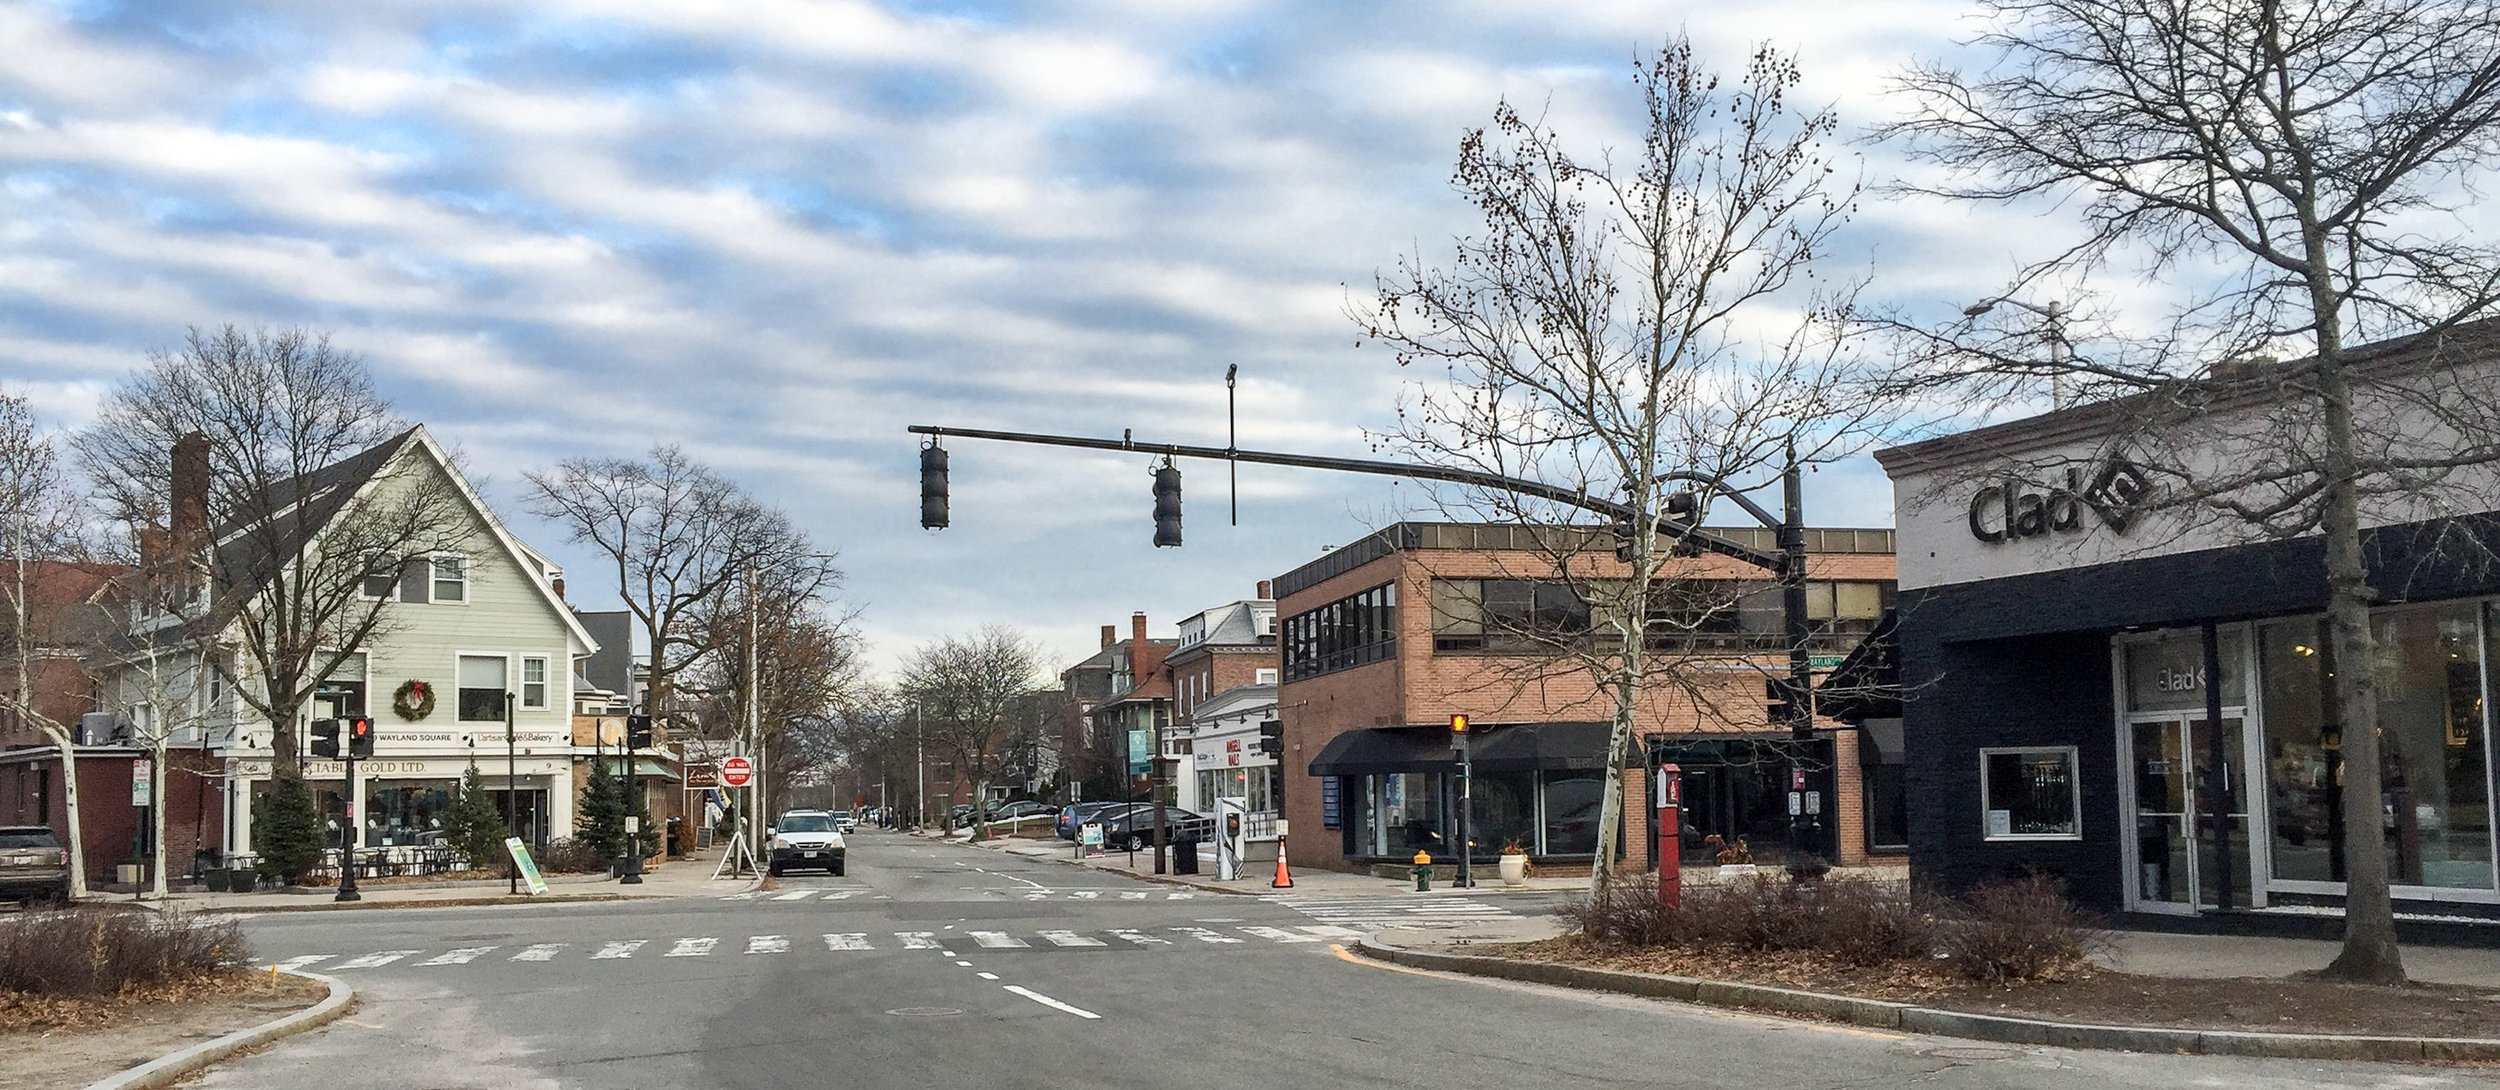 Wayland Square, an neighborhood with many small businesses, in Providence.